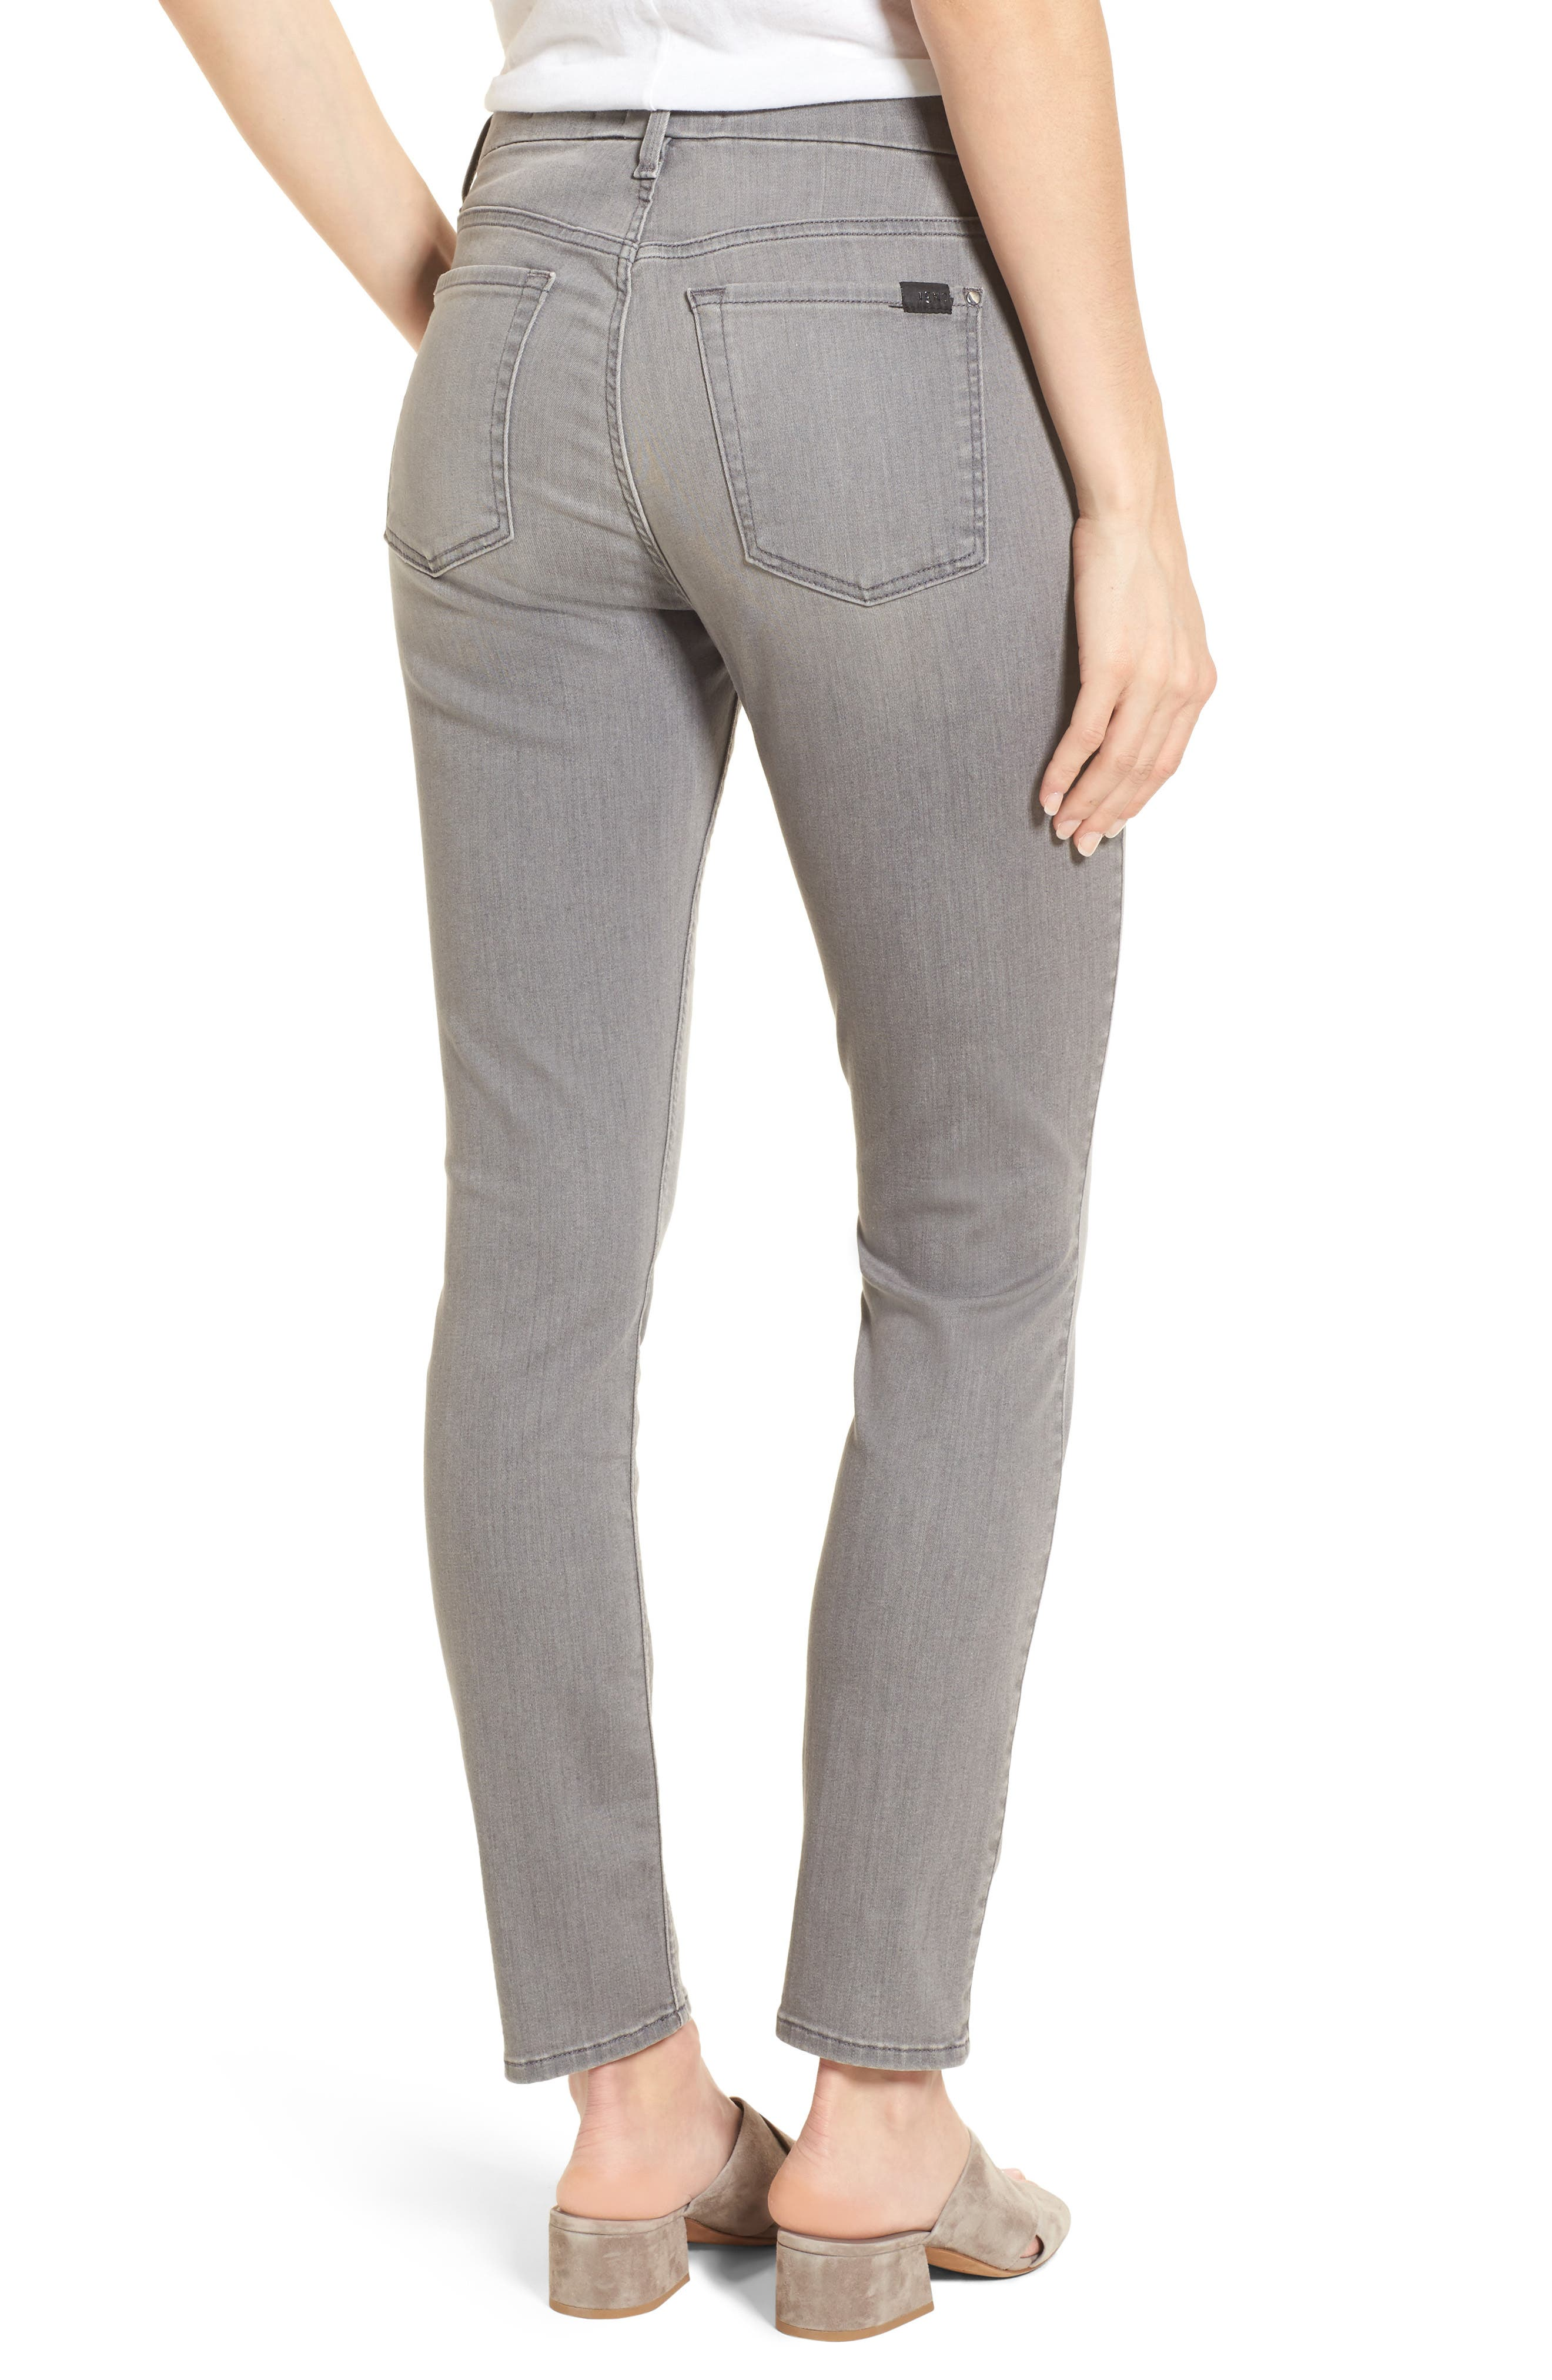 Stretch Ankle Skinny Jeans,                             Alternate thumbnail 2, color,                             Riche Touch Marble Grey